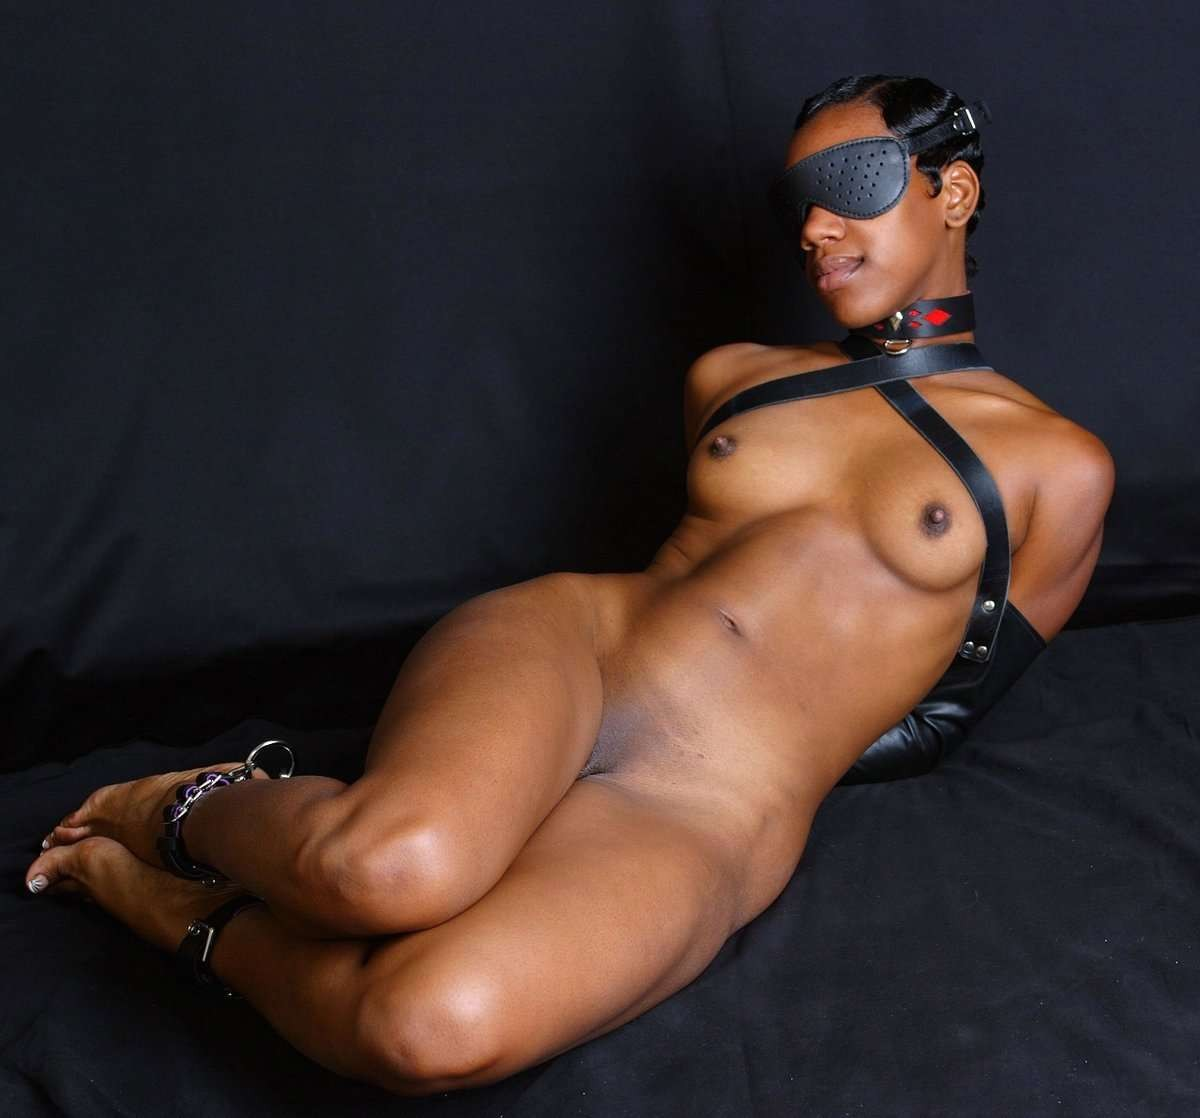 Amateur ebony girl gagged with hands tied takes it doggystyle 2